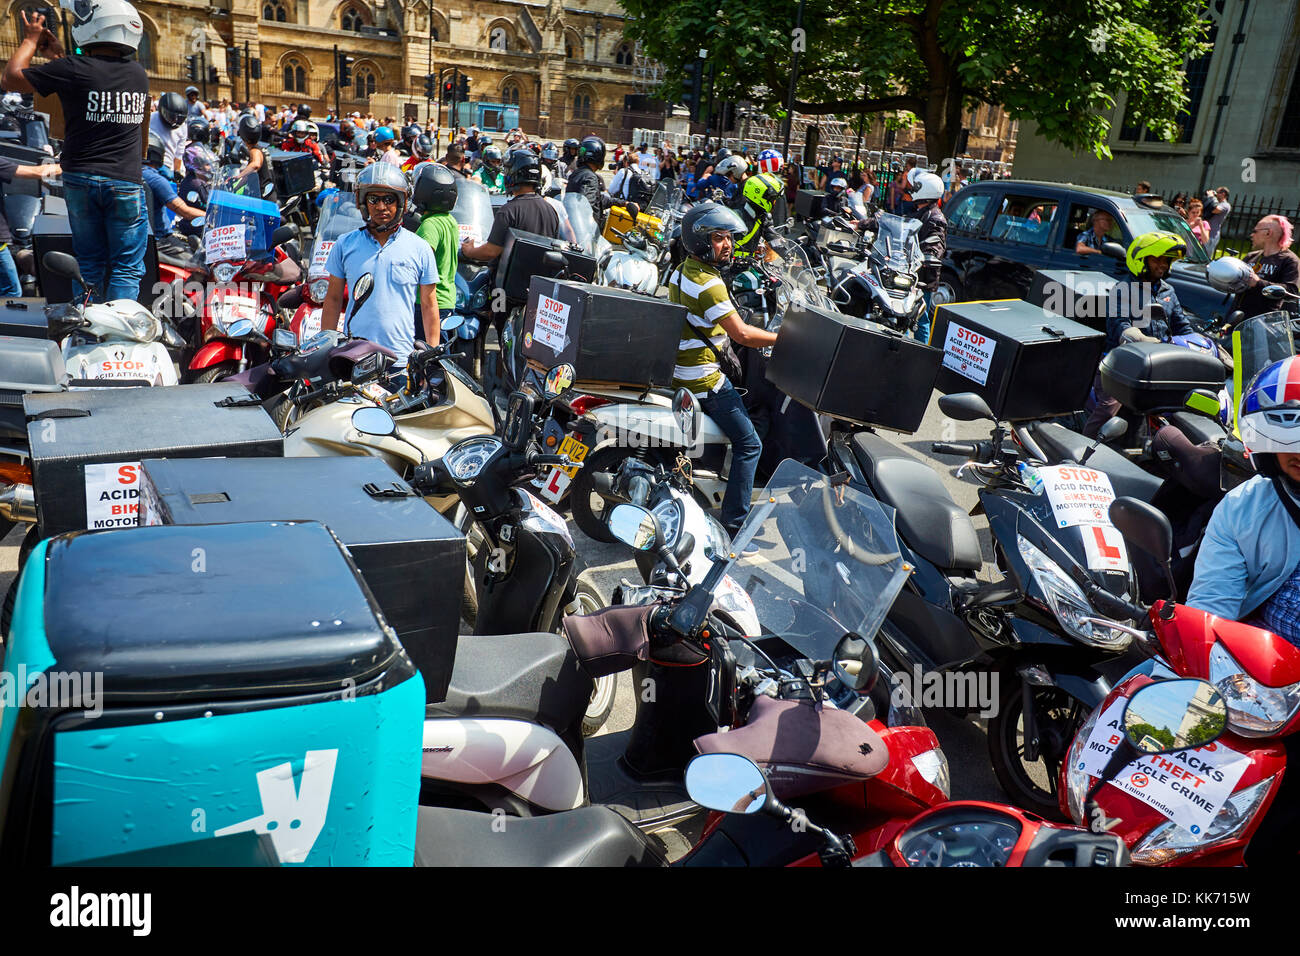 Moped riders, including couriers and delivery drivers, protest inParliament Square in London against a recent spate - Stock Image